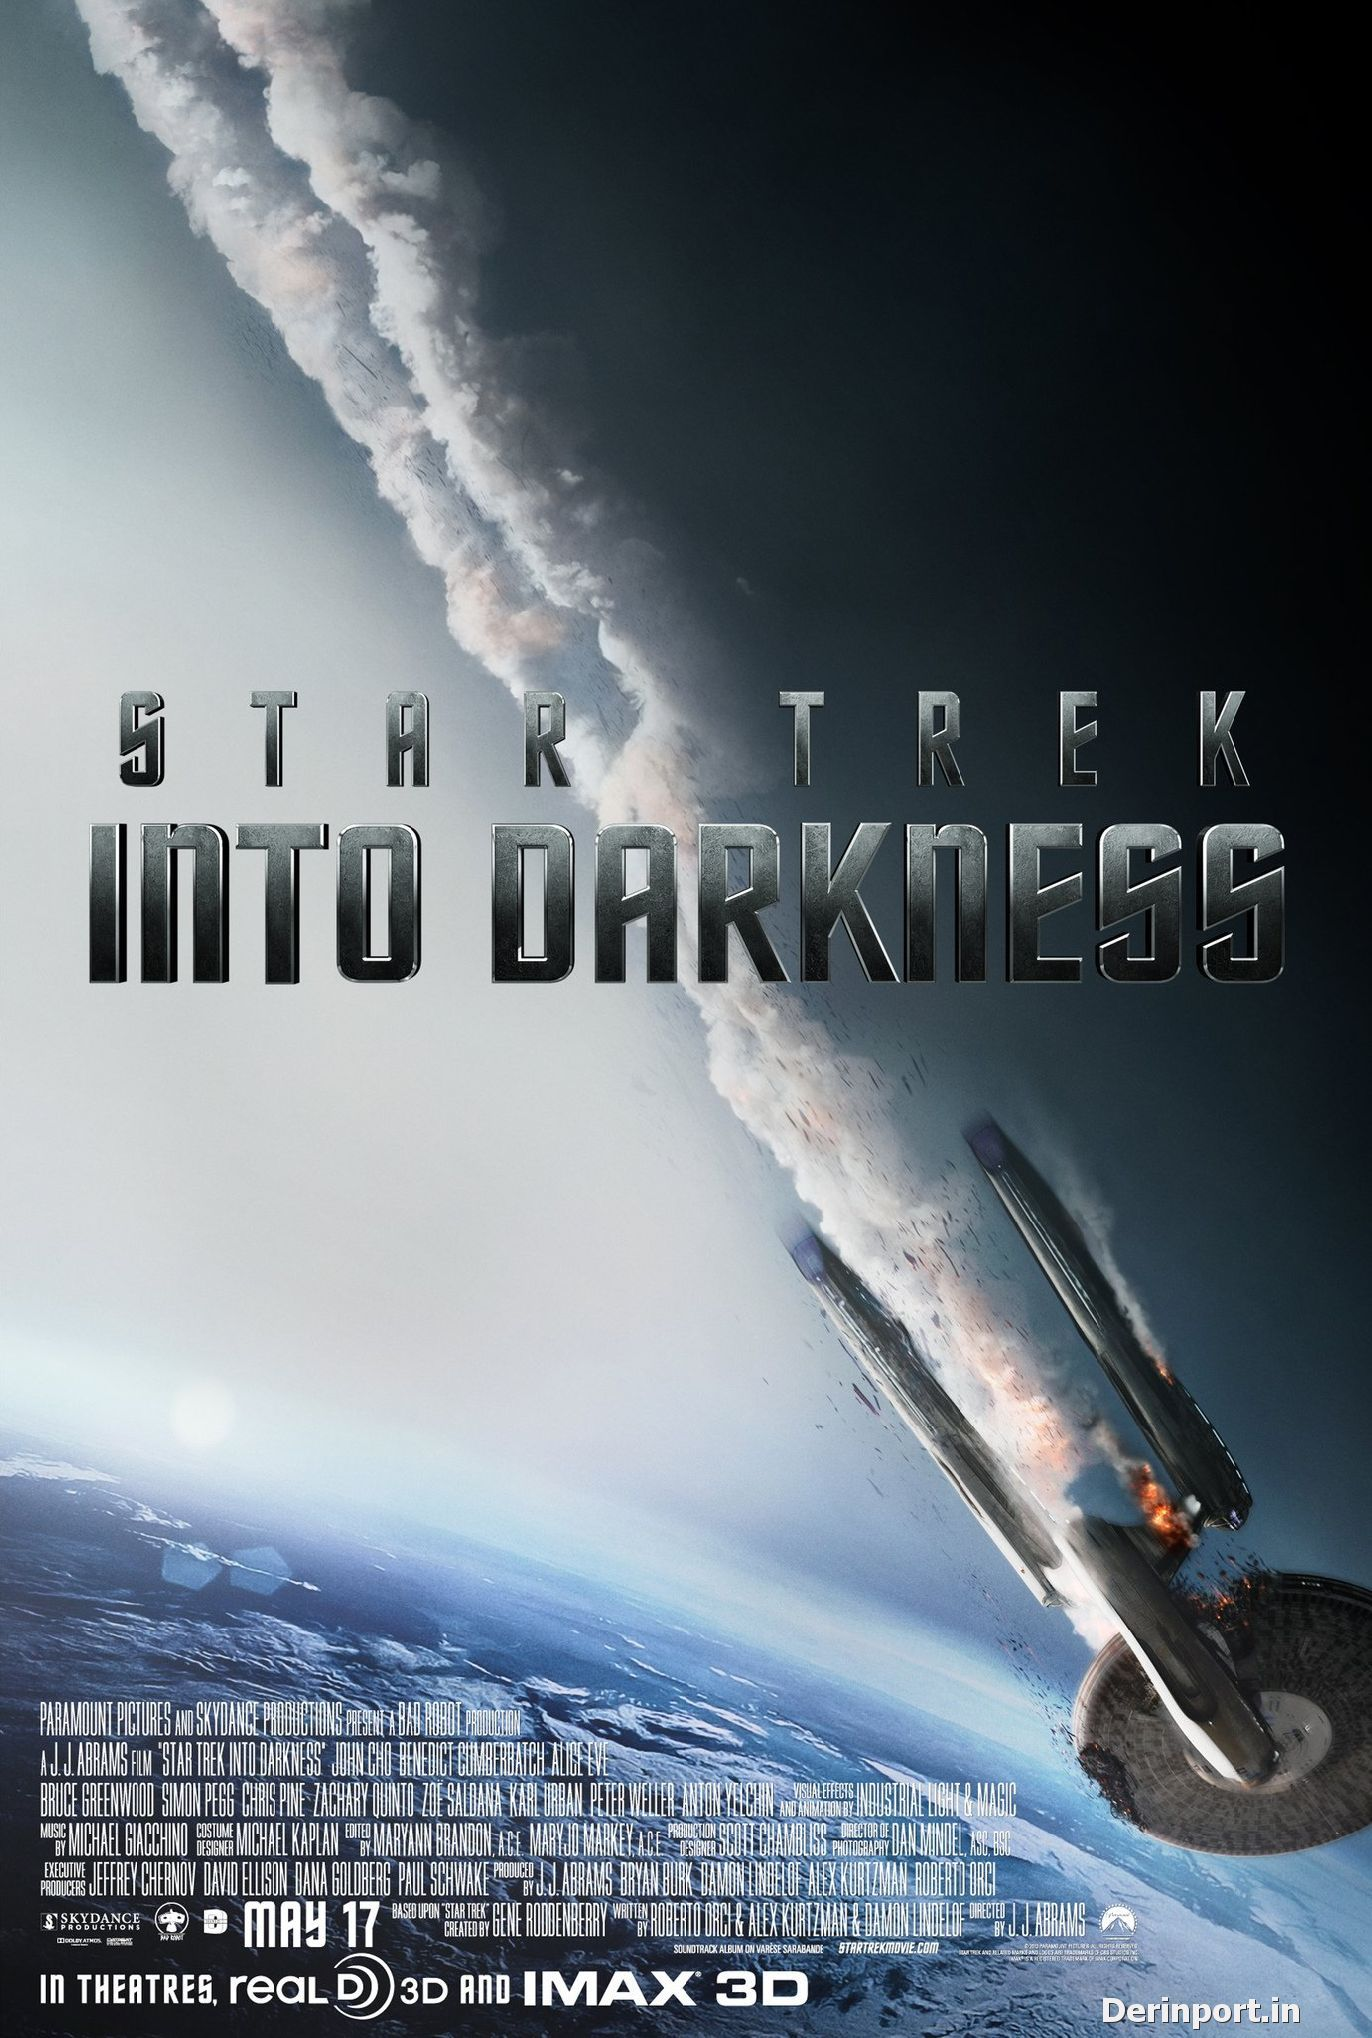 Star Trek: Bilinmeze Doğru – Star Trek Into Darkness (2013) TS XVID AC3 HQ Hive-CM8